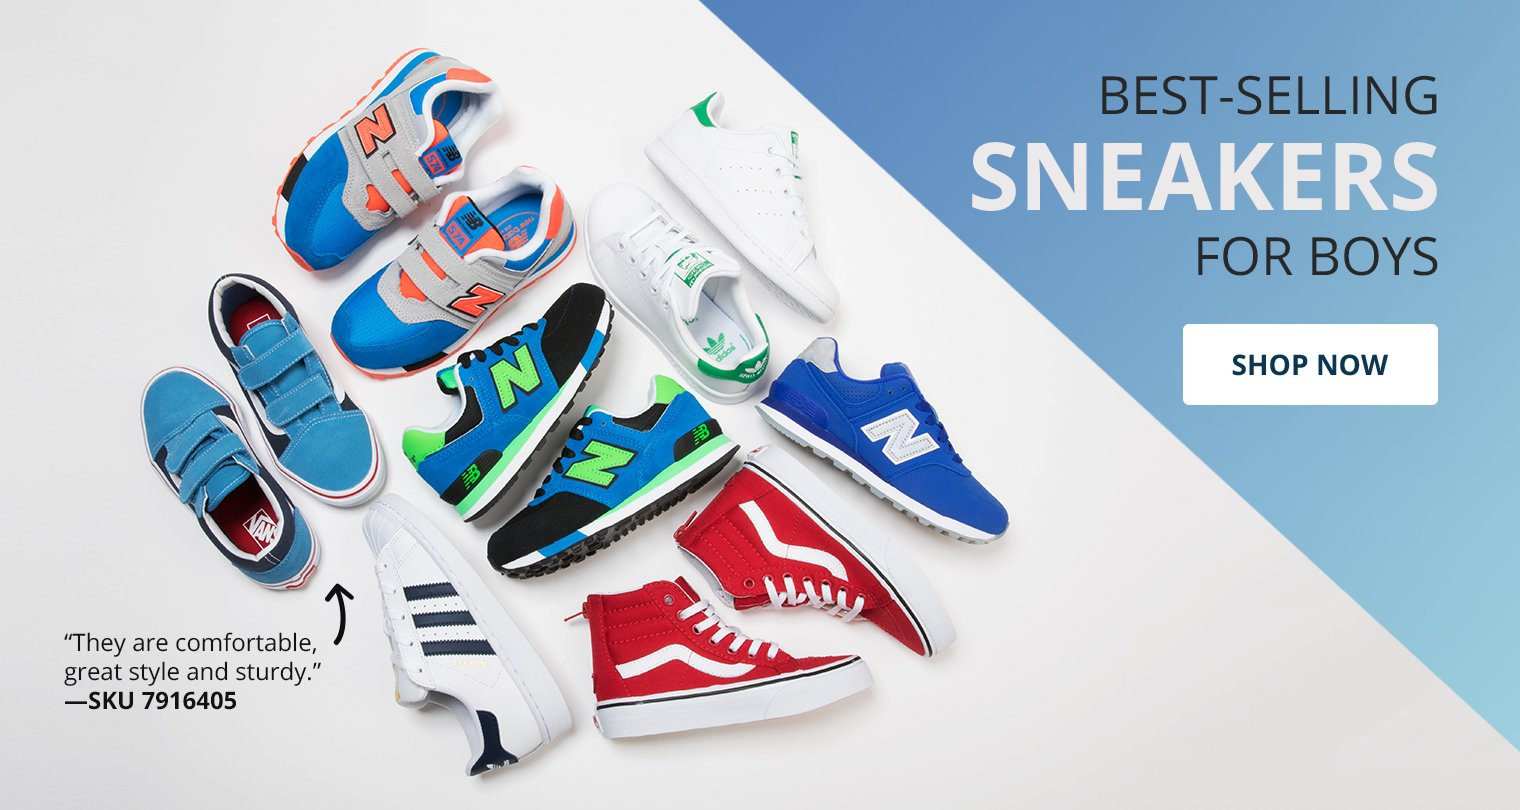 Best Selling Sneakers for boys. Shop Now.